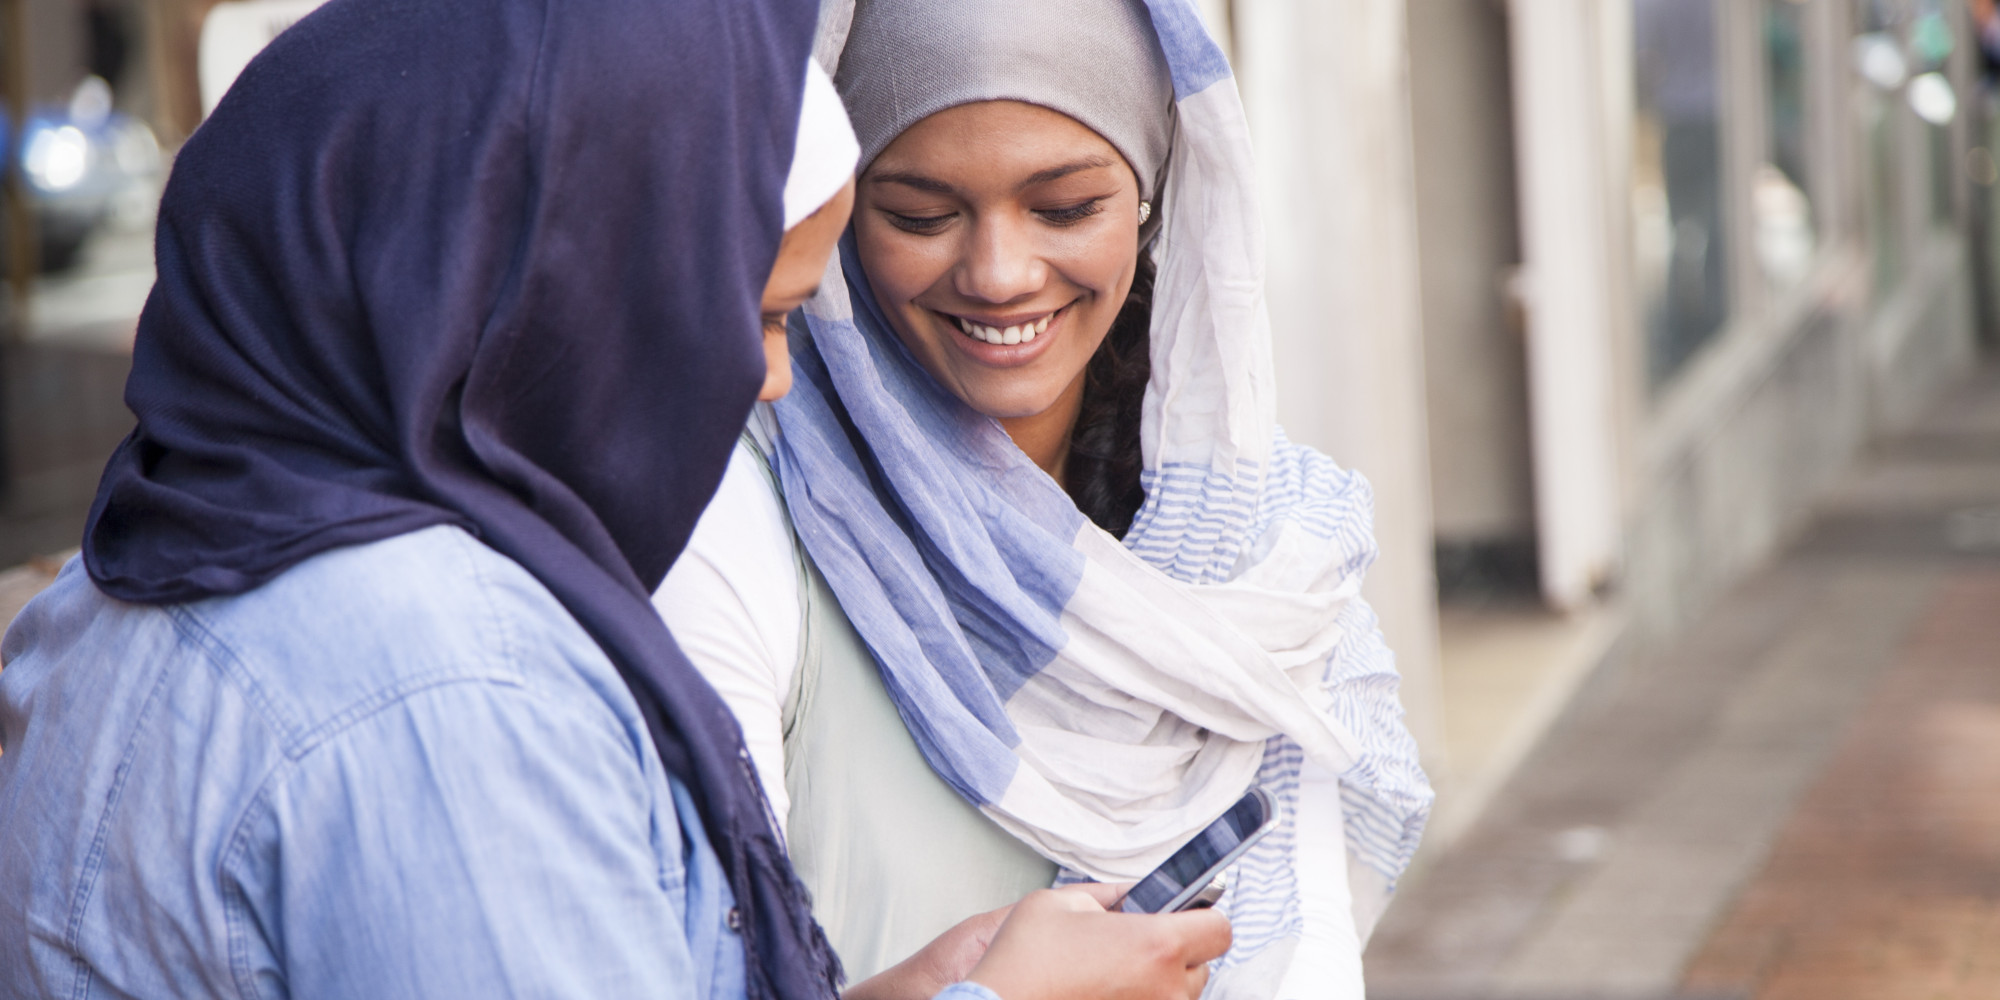 muslim single women in mulvane Modern muslimahs: a step in mr right's direction muslim women today have social networking, matrimonial sites, samoosa runs and matchmakers to help find the right husband but it's still not easy.